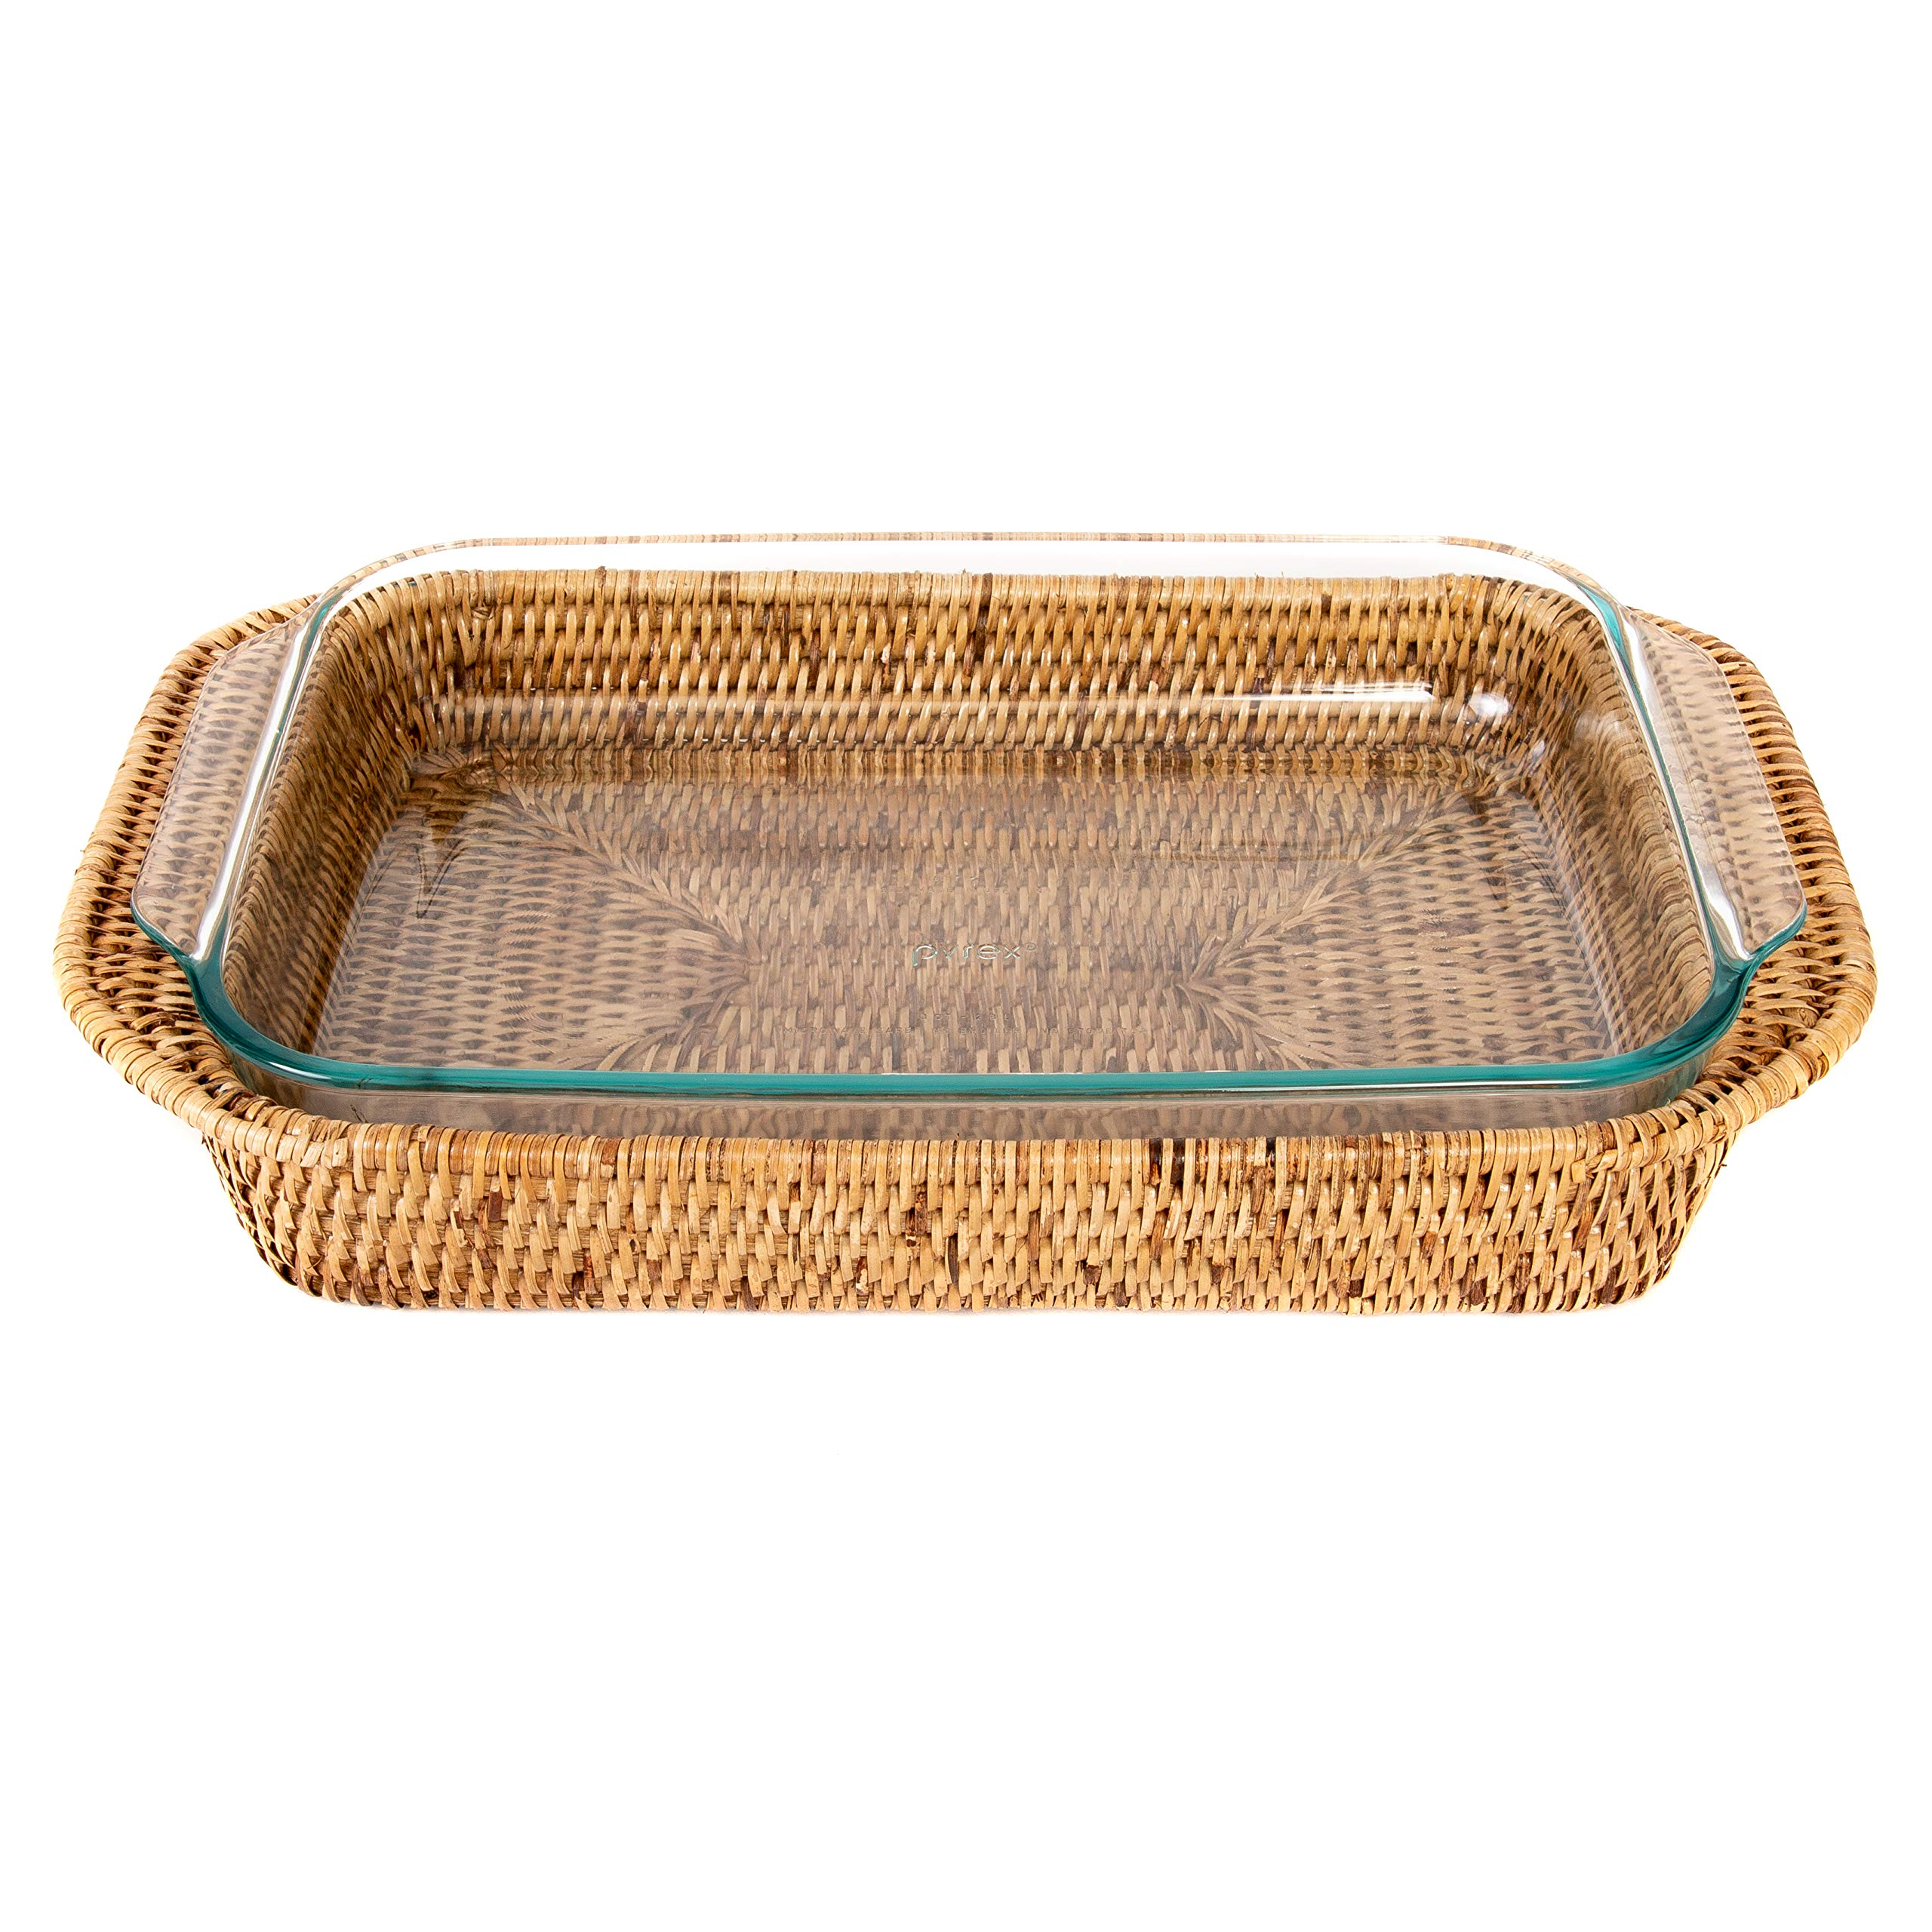 Artifacts Trading Company Rattan Rectangle Baker Basket 13''x9''x2'' with Pyrex Included by Artifacts Trading Company